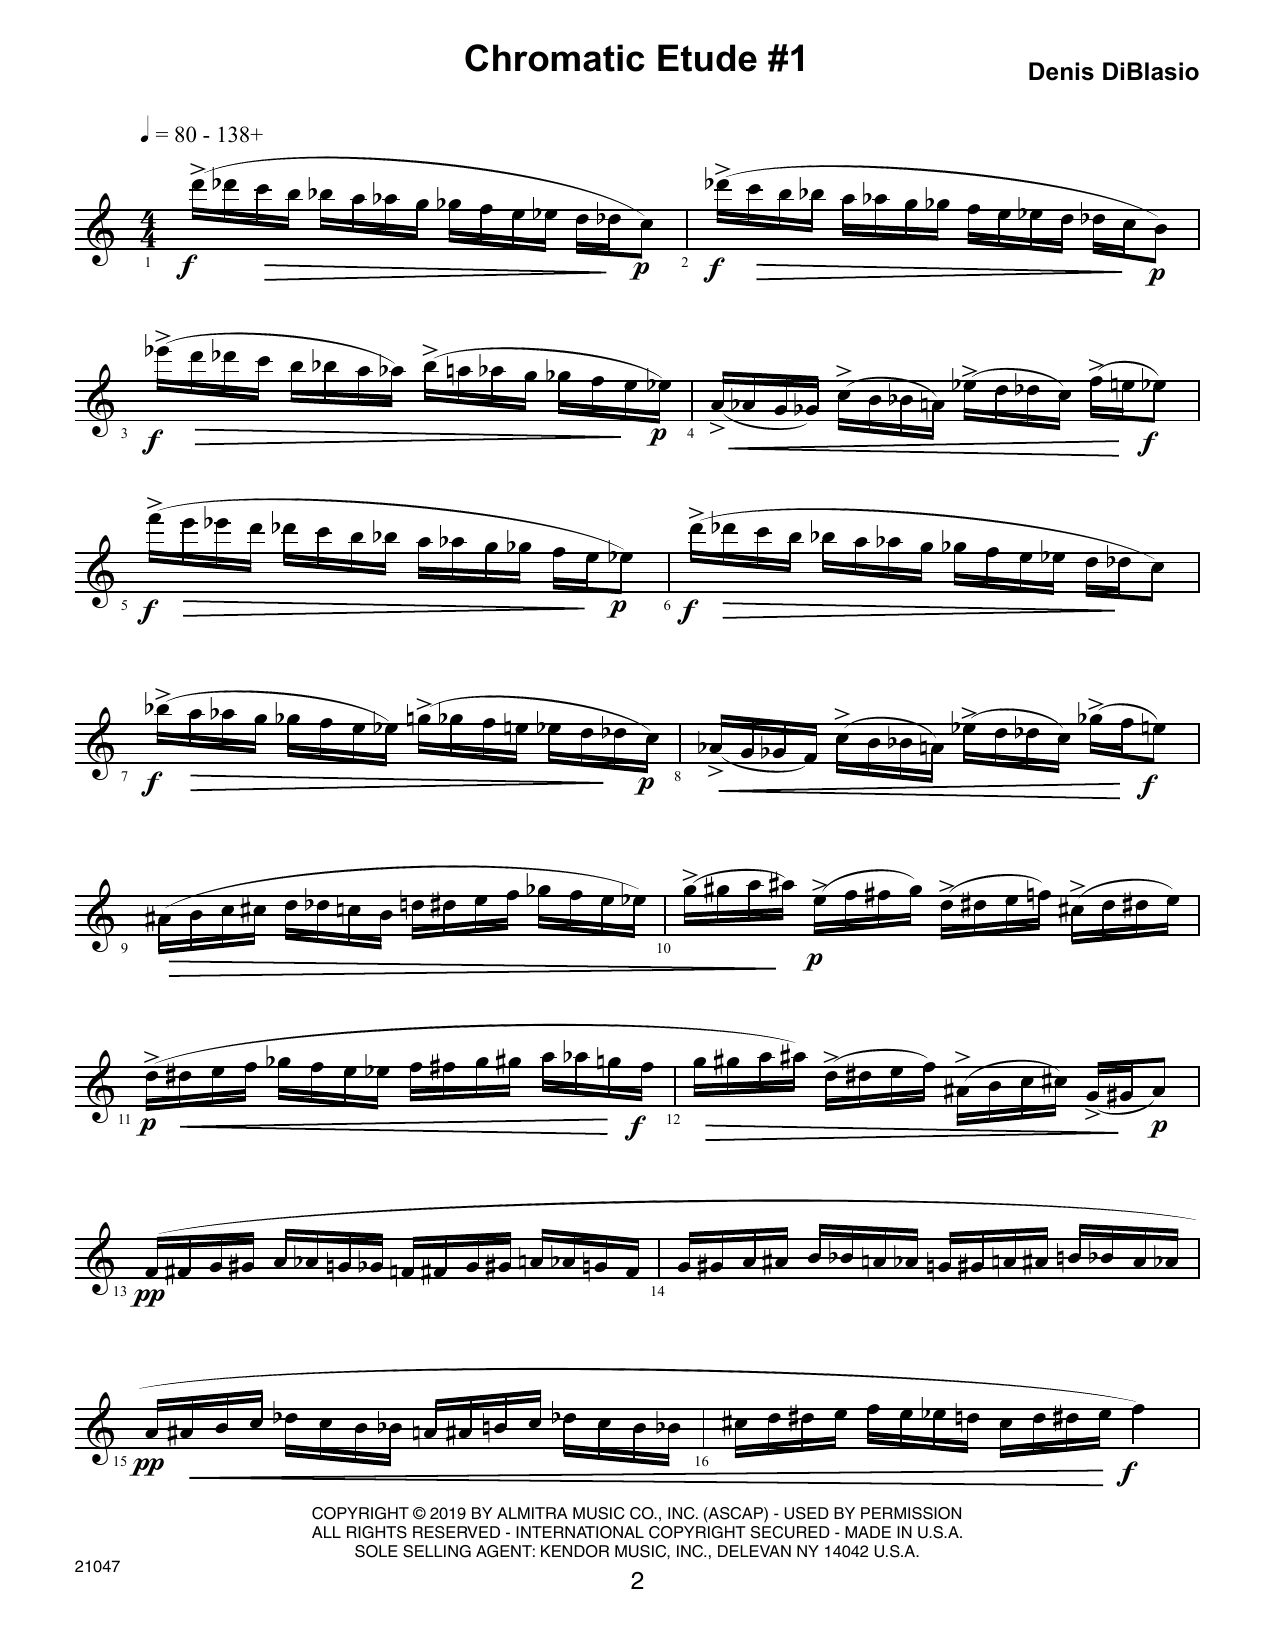 Chromatic Etudes And Sound Patterns For Saxophone Sheet Music